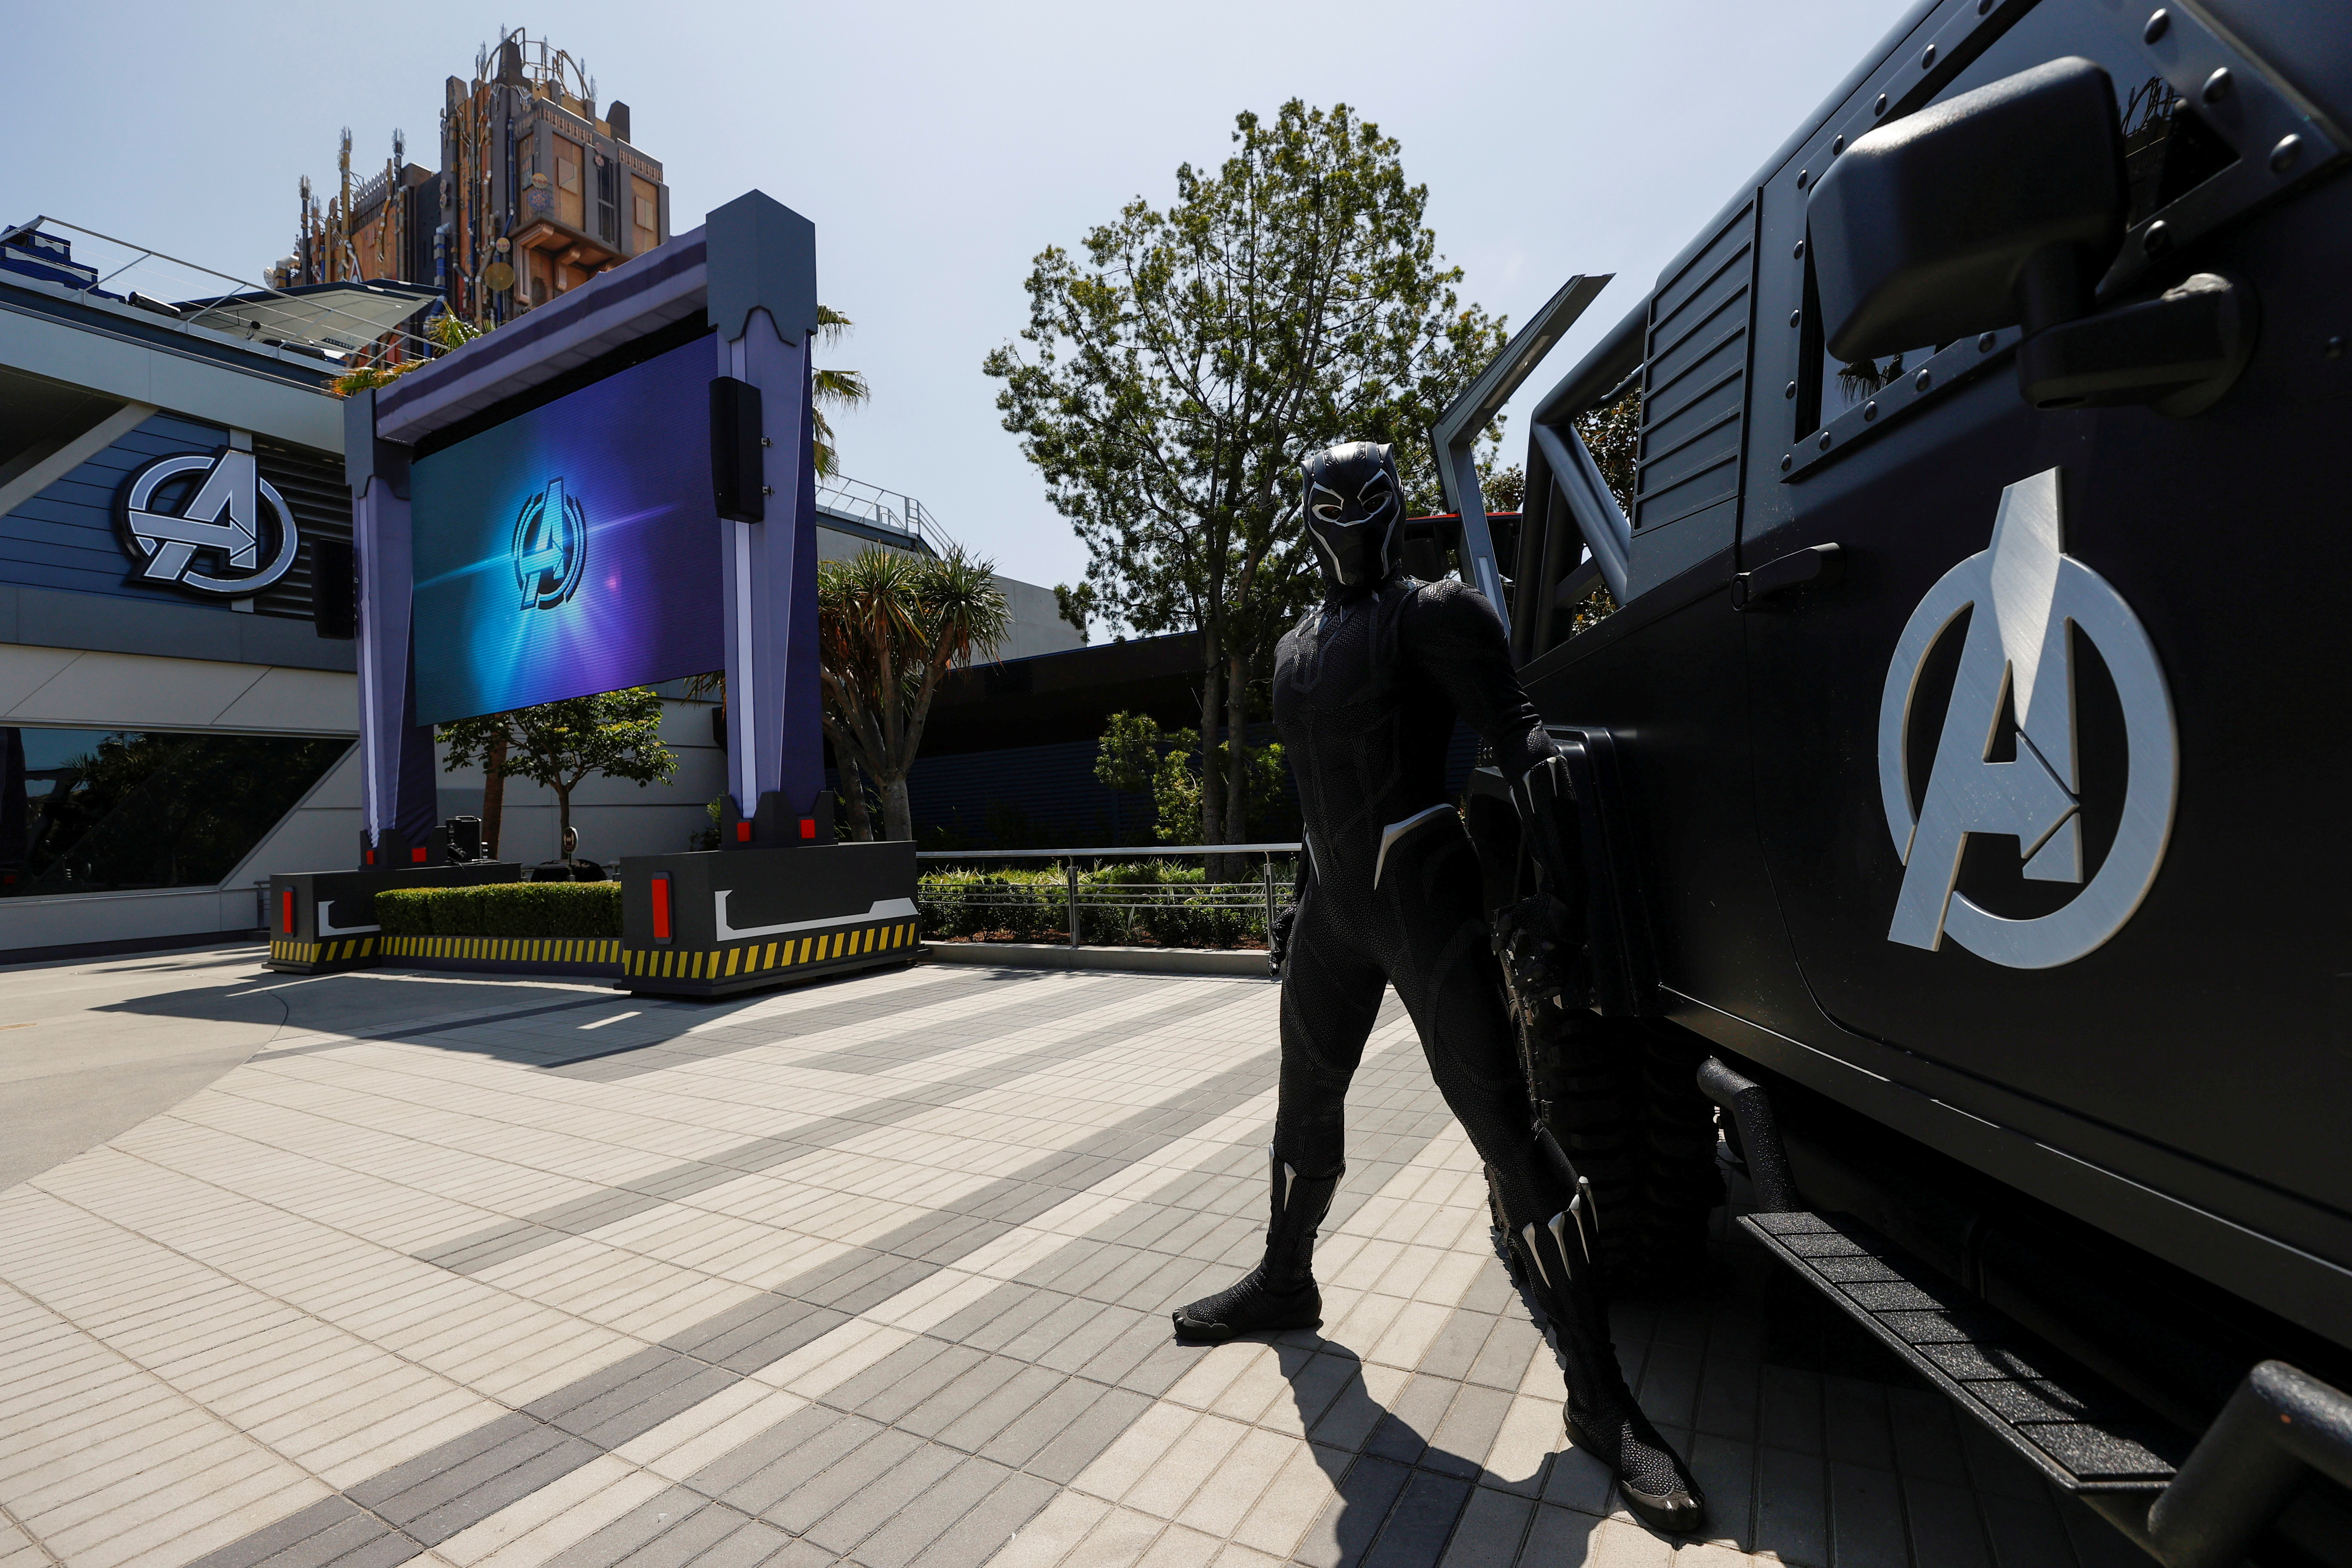 The character of Black Panther is pictured next to a vehicle ahead of the opening of the Avengers Campus area at Disney California Adventure Park in Anaheim, California, U.S., June 1, 2021. Picture taken June 1, 2021. REUTERS/Mario Anzuoni/File Photo